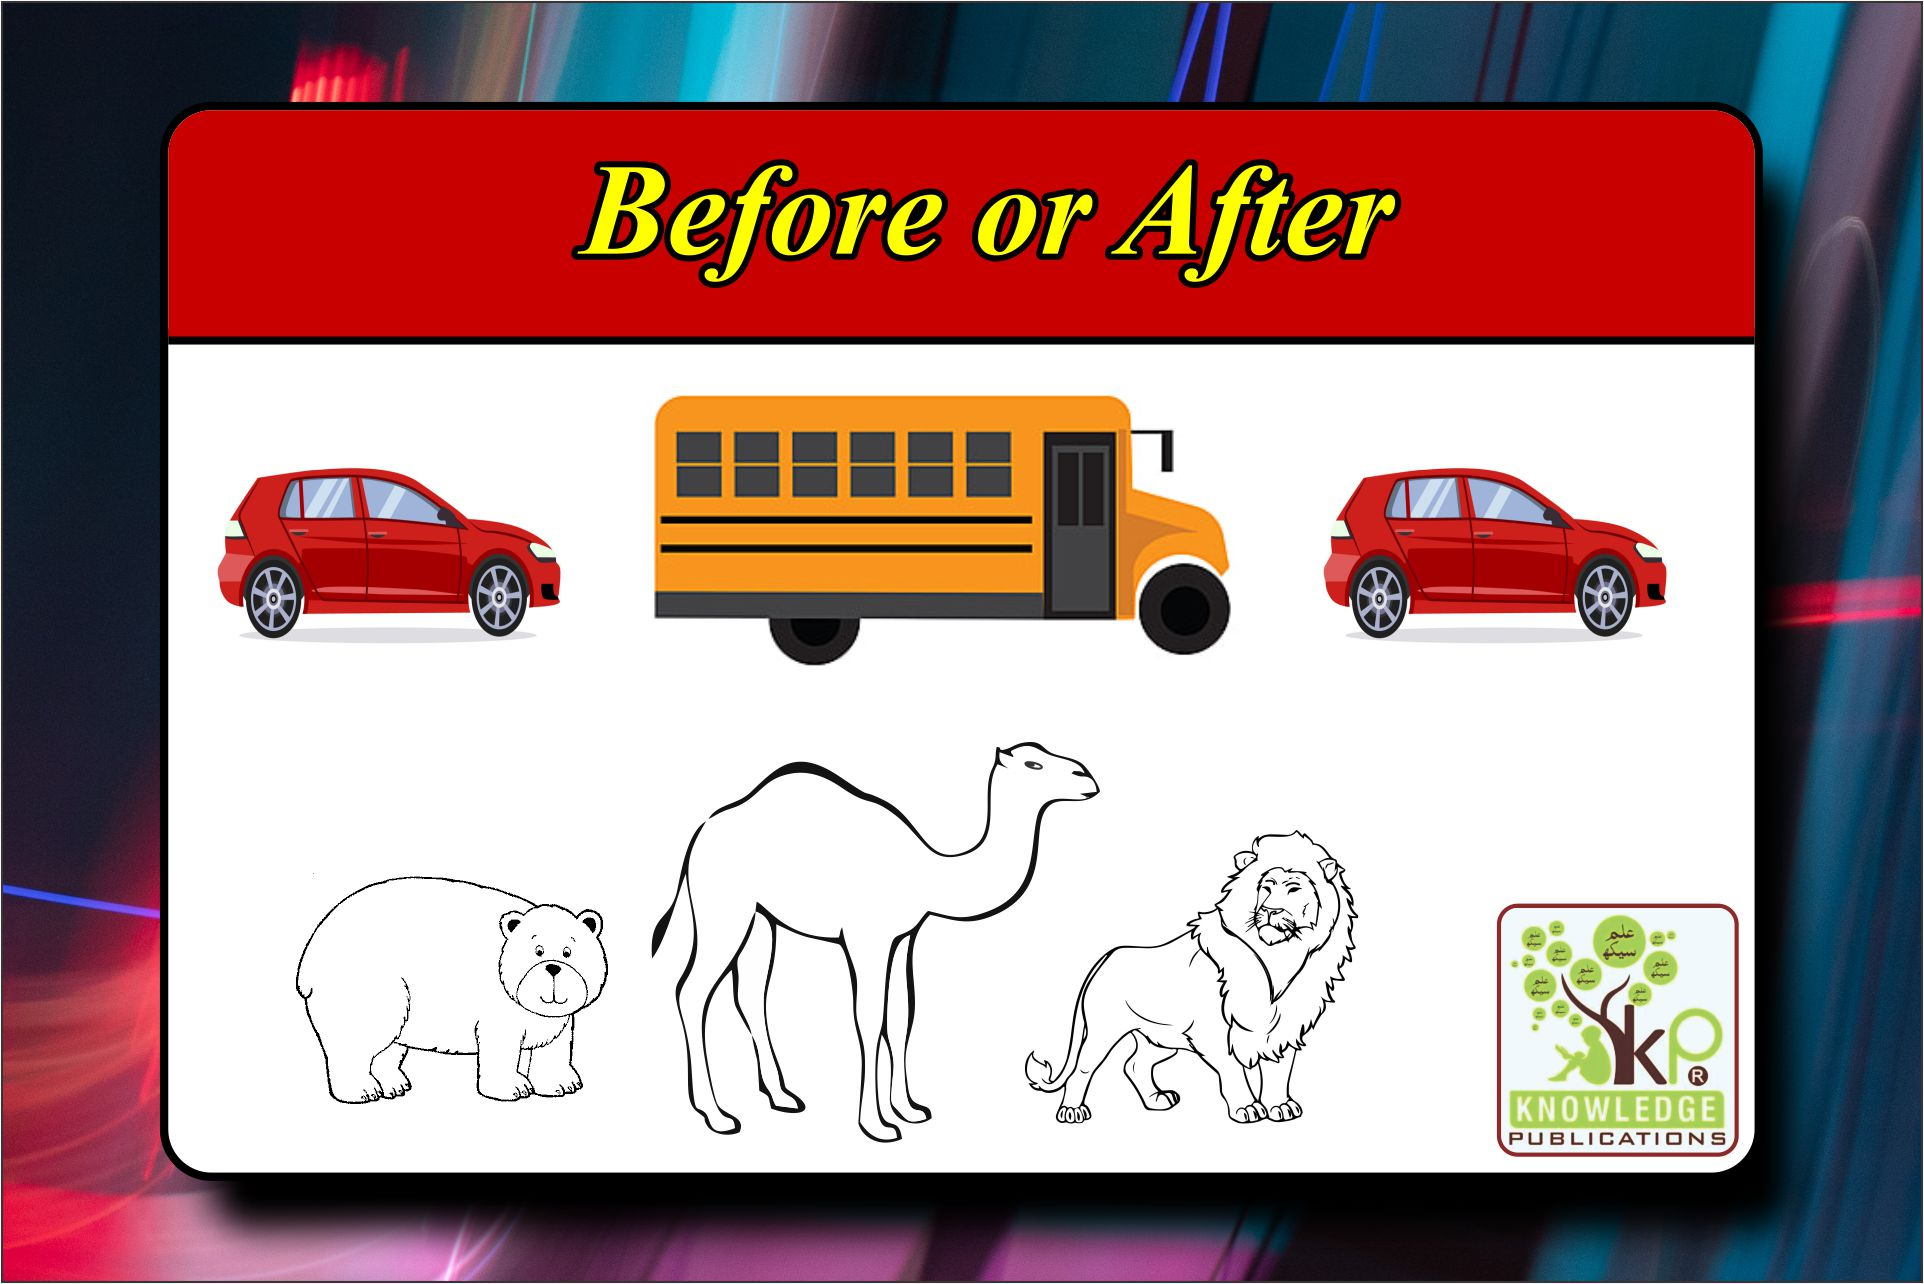 Before or After